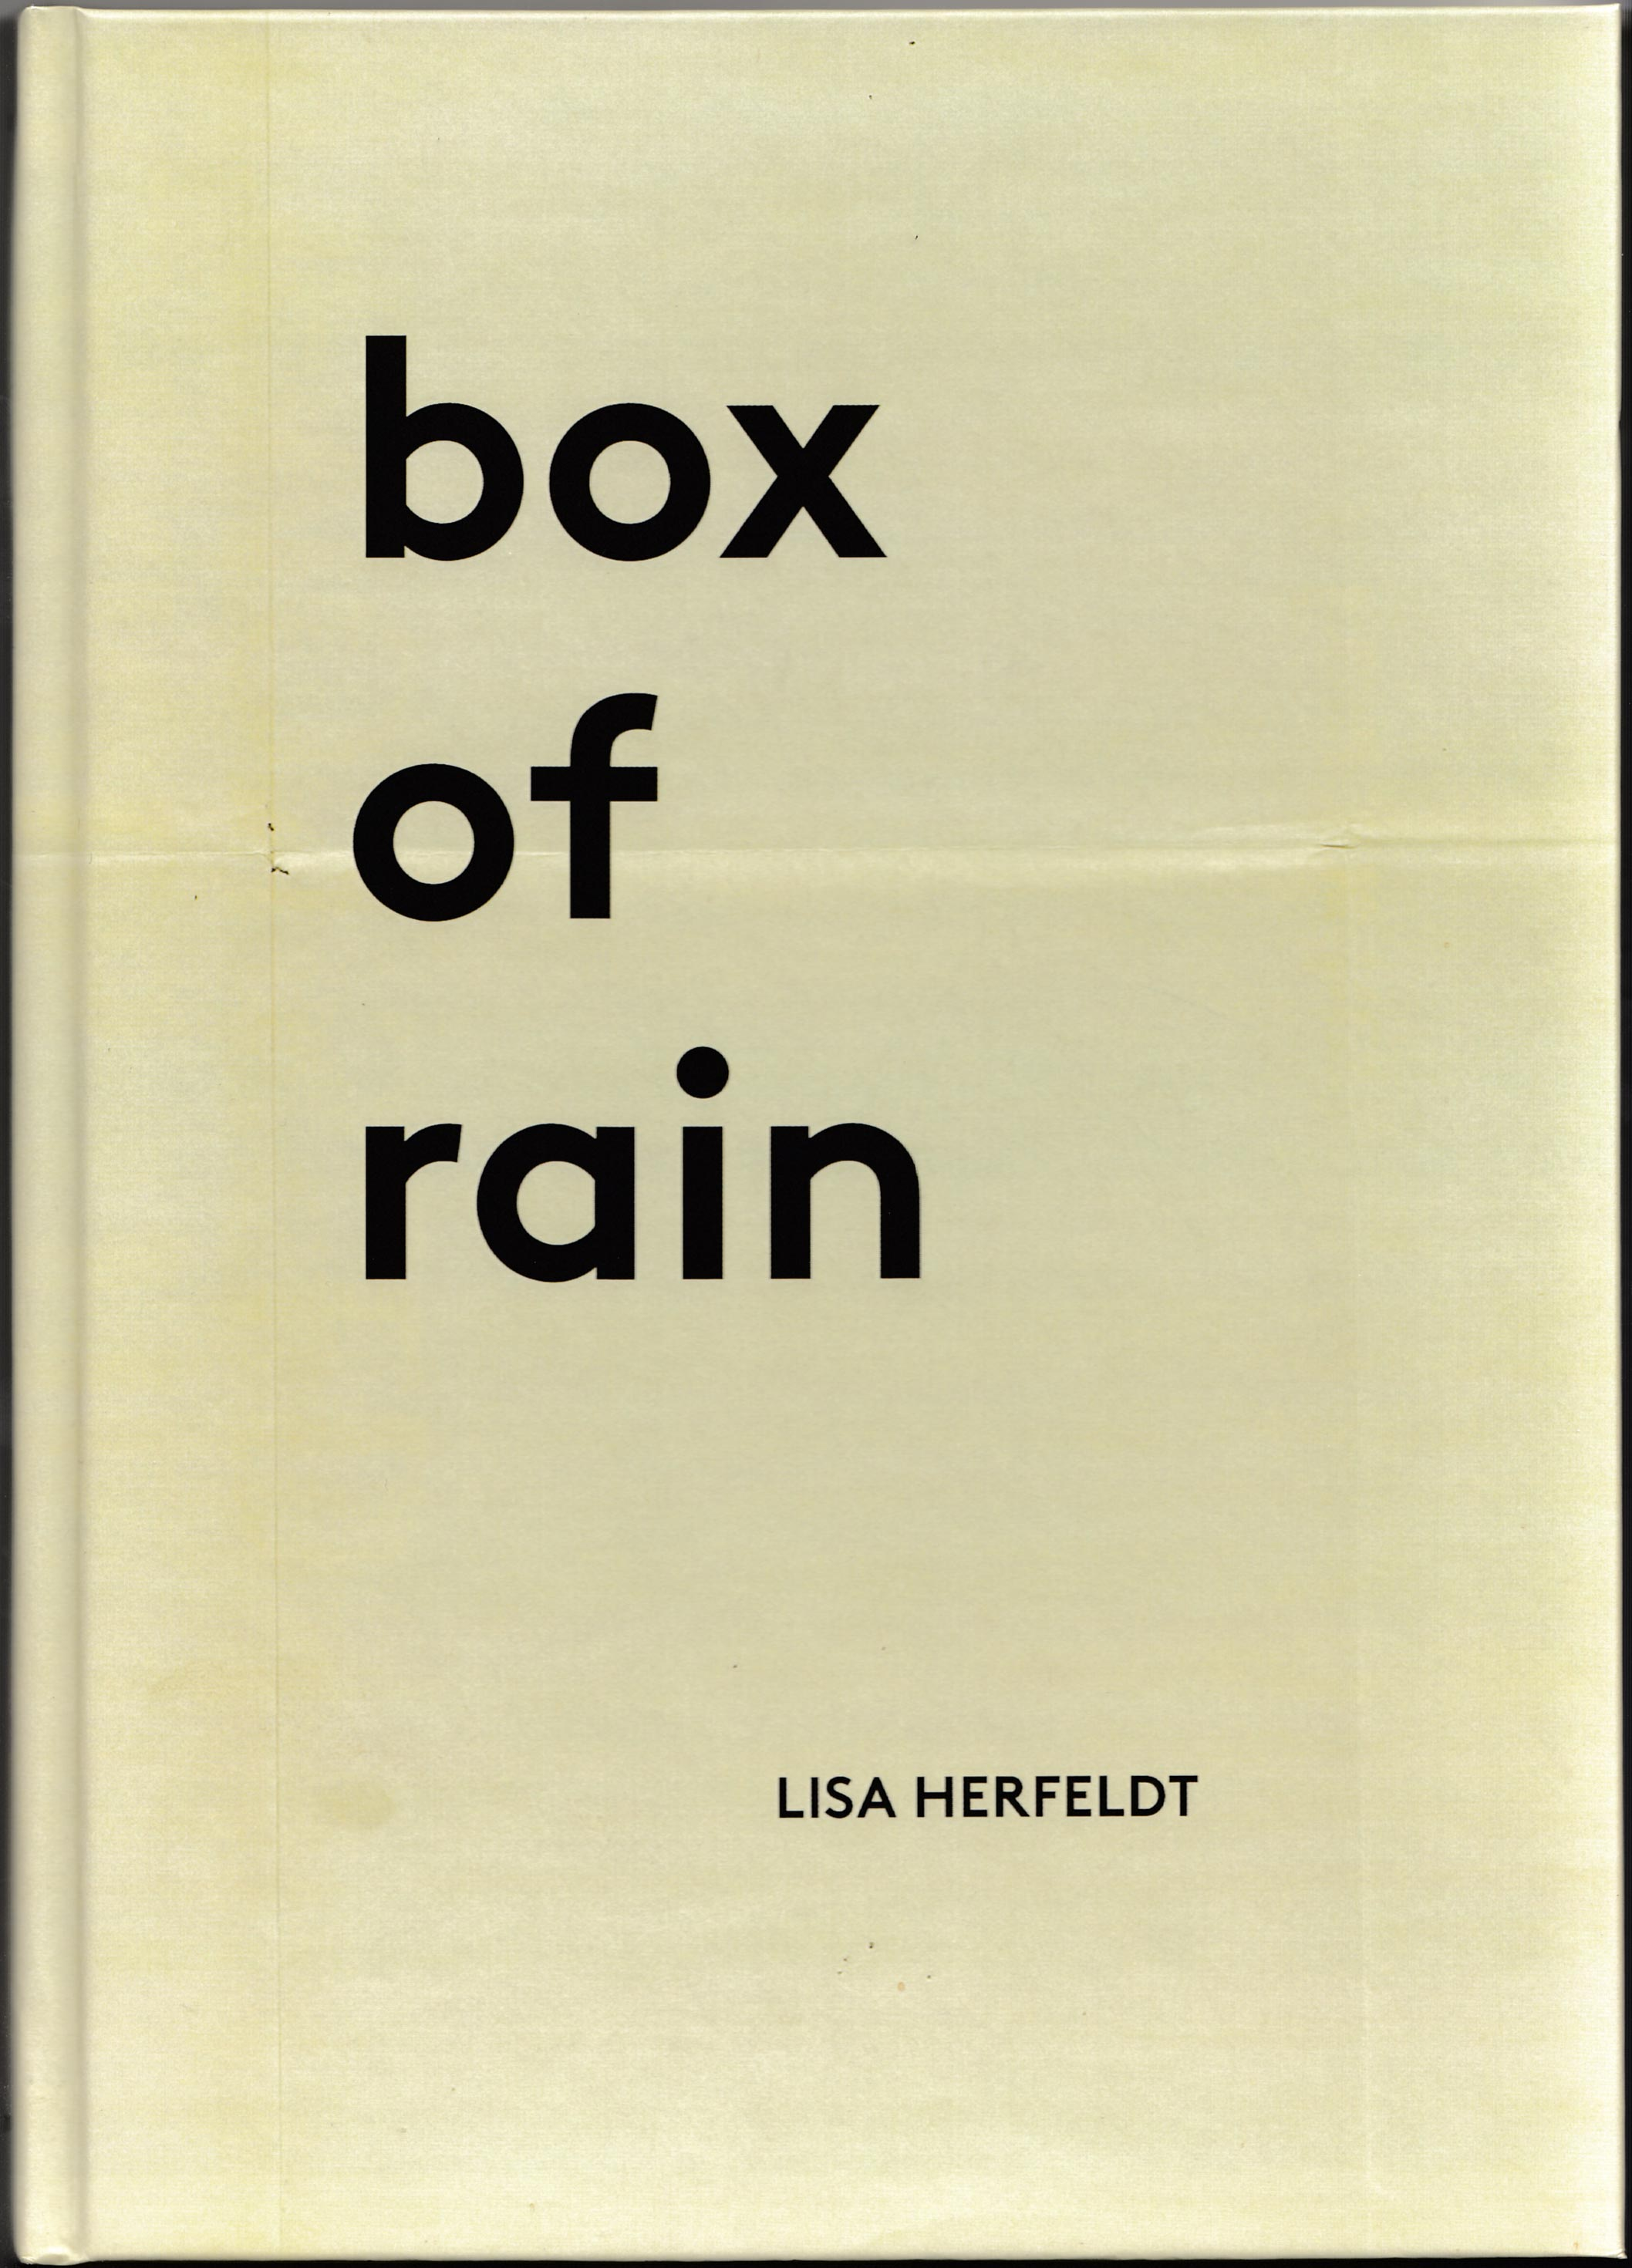 LISA HERFELDT publications